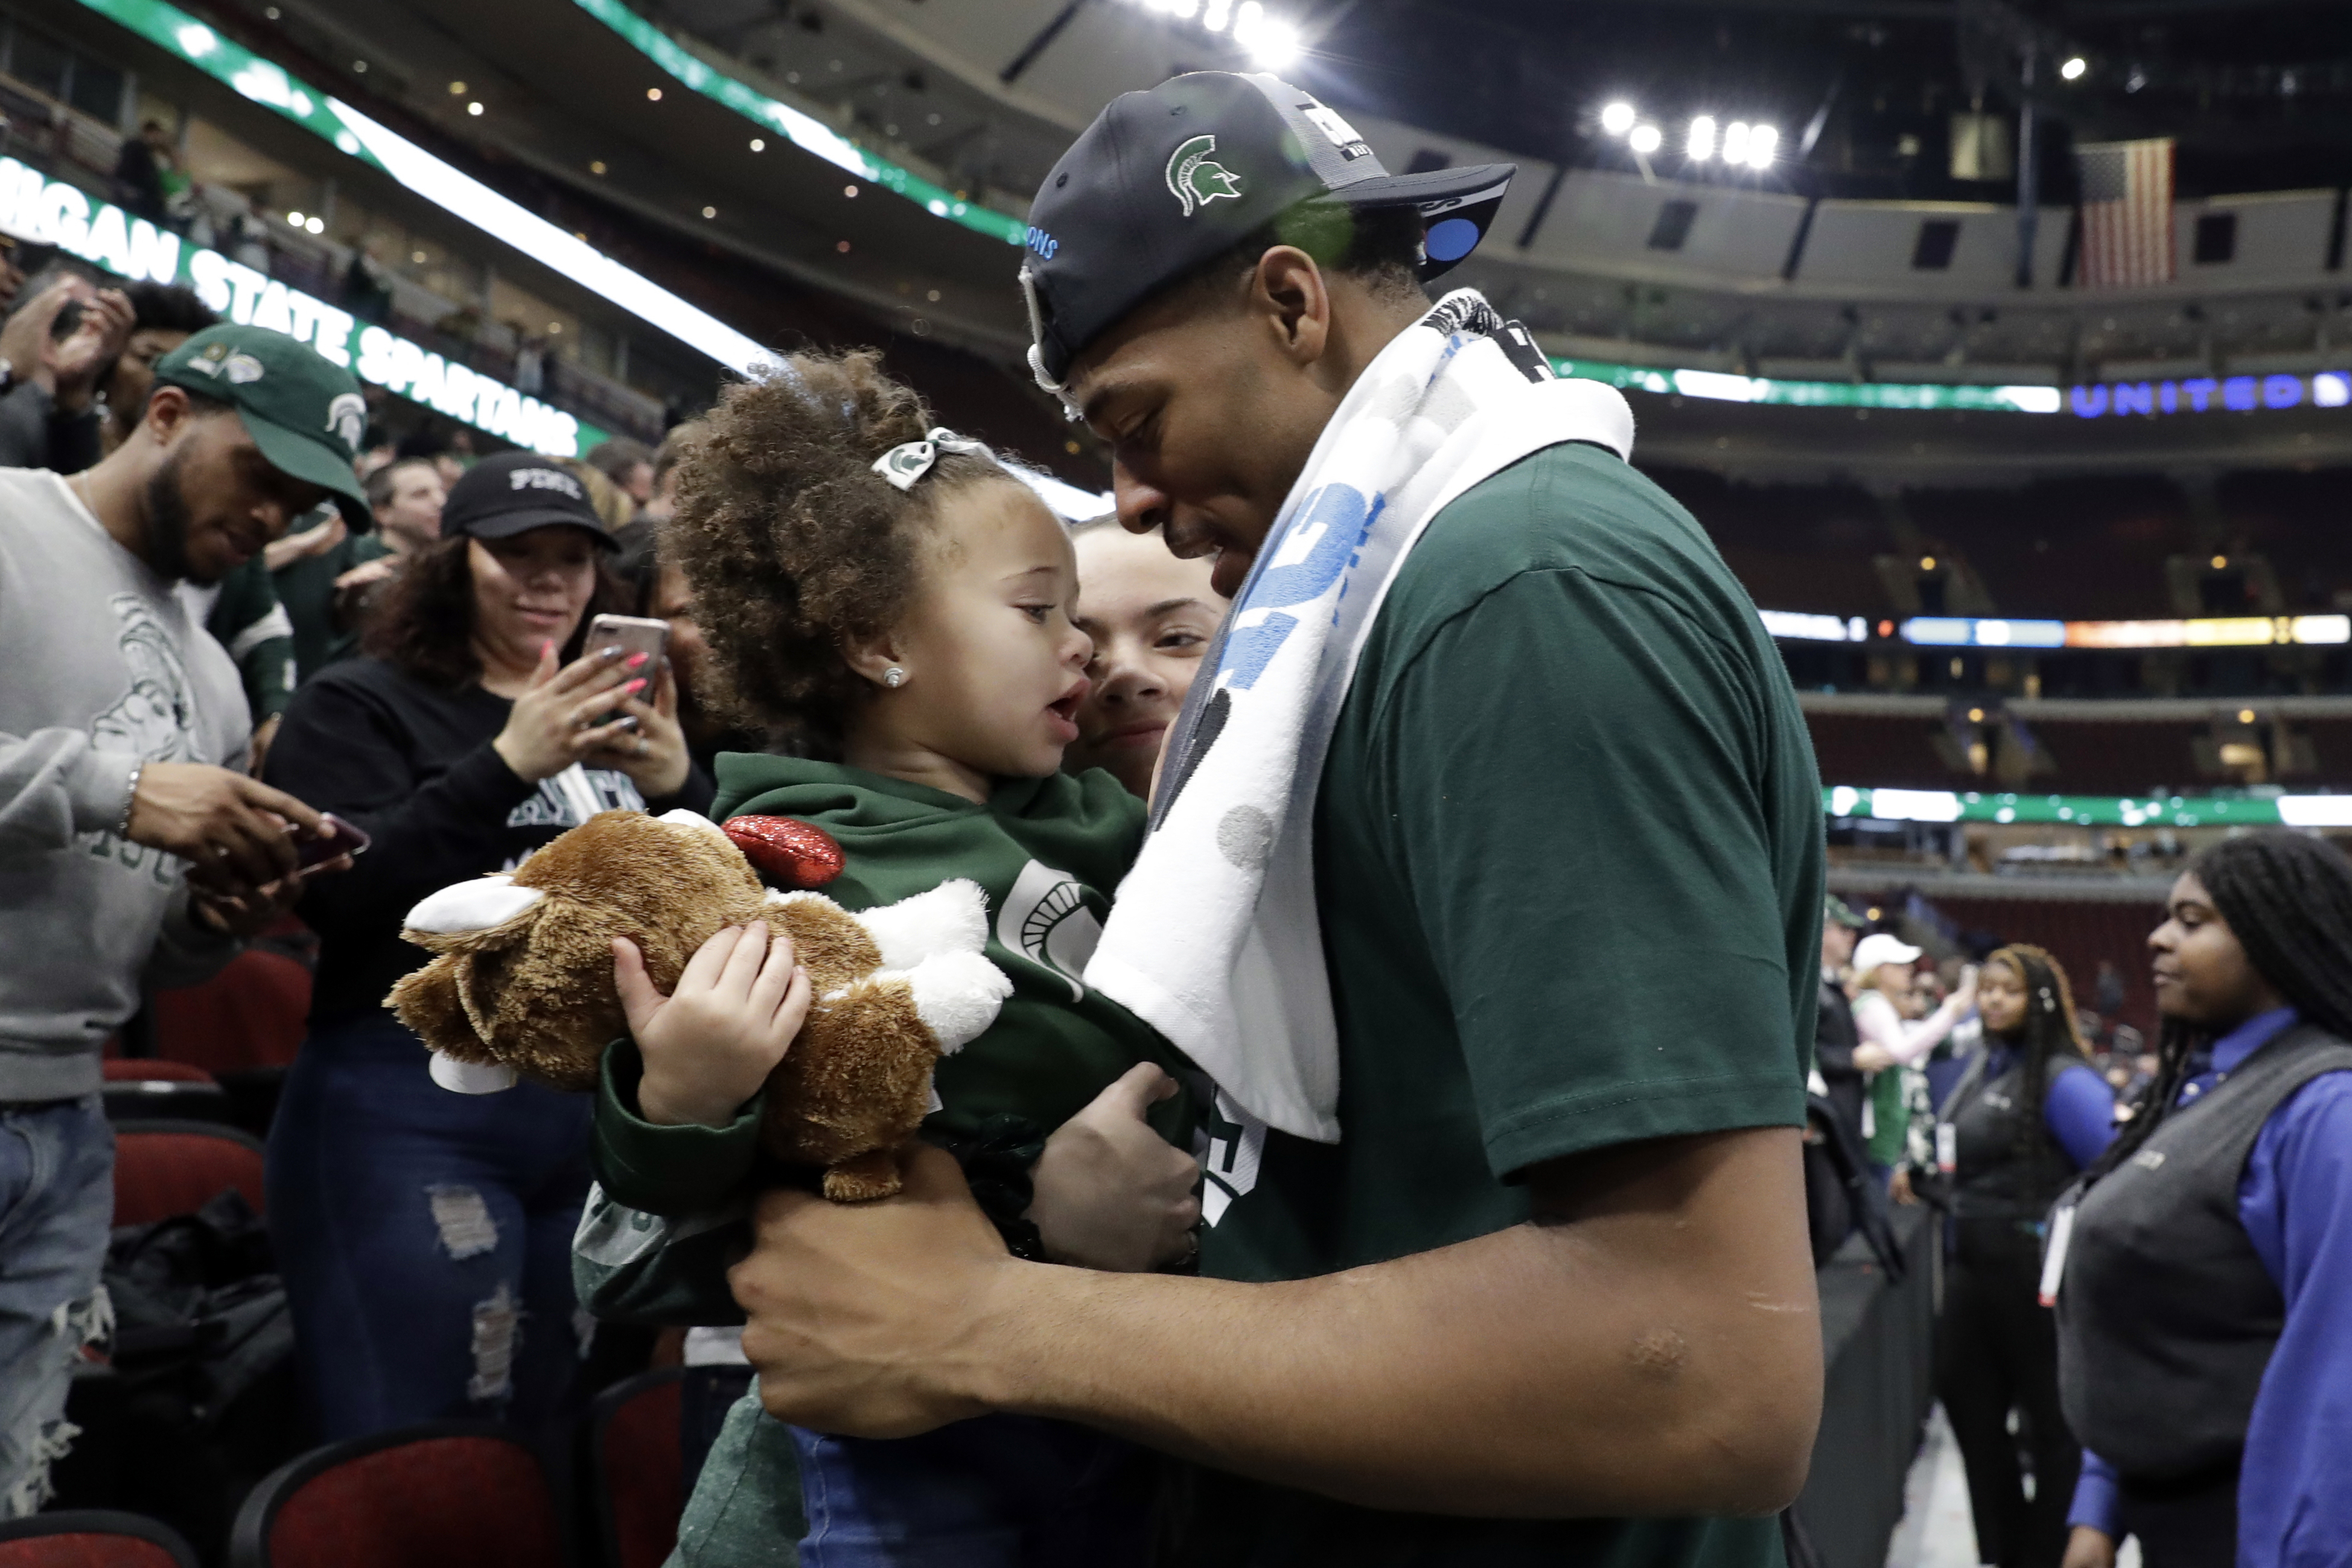 Michigan State's Xavier Tillman celebrates with his daughter after defeating Michigan 65-60 in an NCAA college basketball championship game in the Big Ten Conference tournament, Sunday, March 17, 2019, in Chicago.